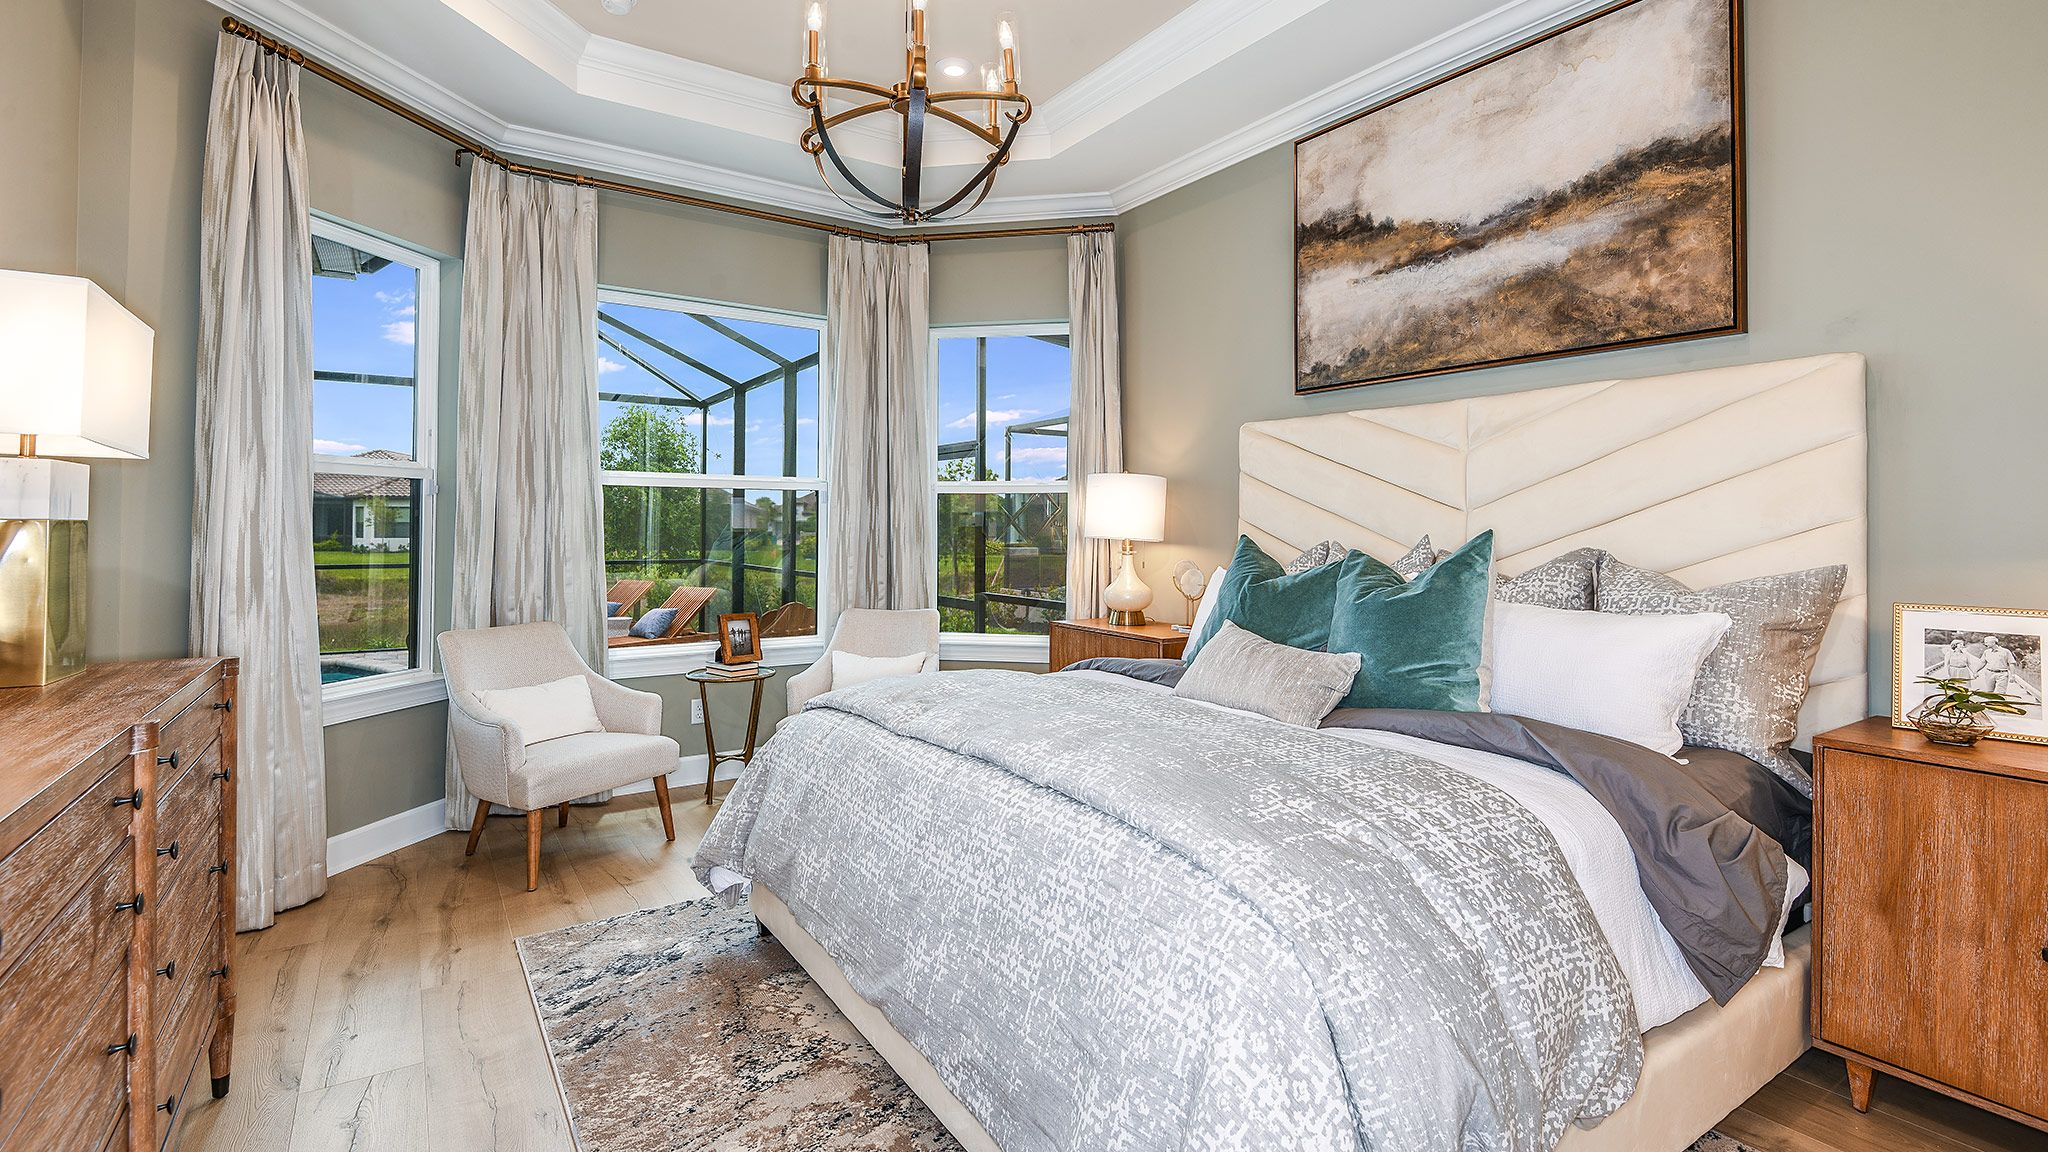 Bedroom featured in the Farnese Plan By Taylor Morrison in Naples, FL